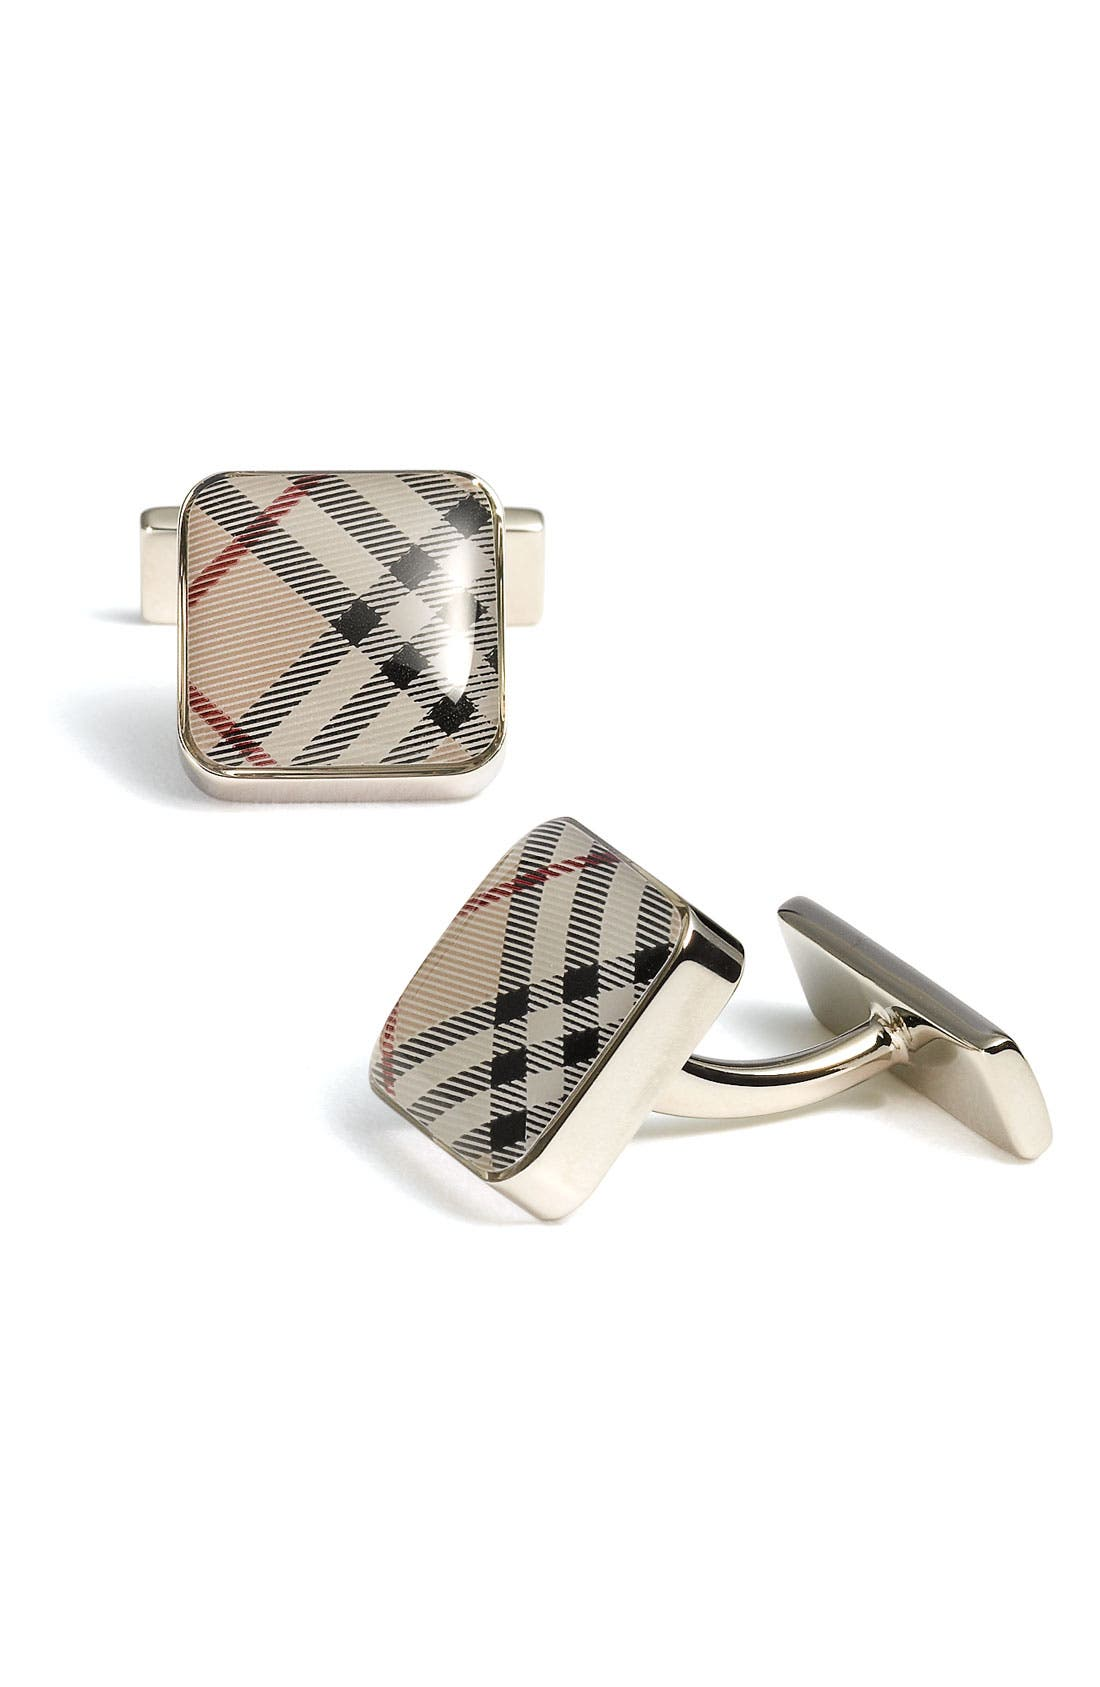 Main Image - Burberry Square Check Cuff Links